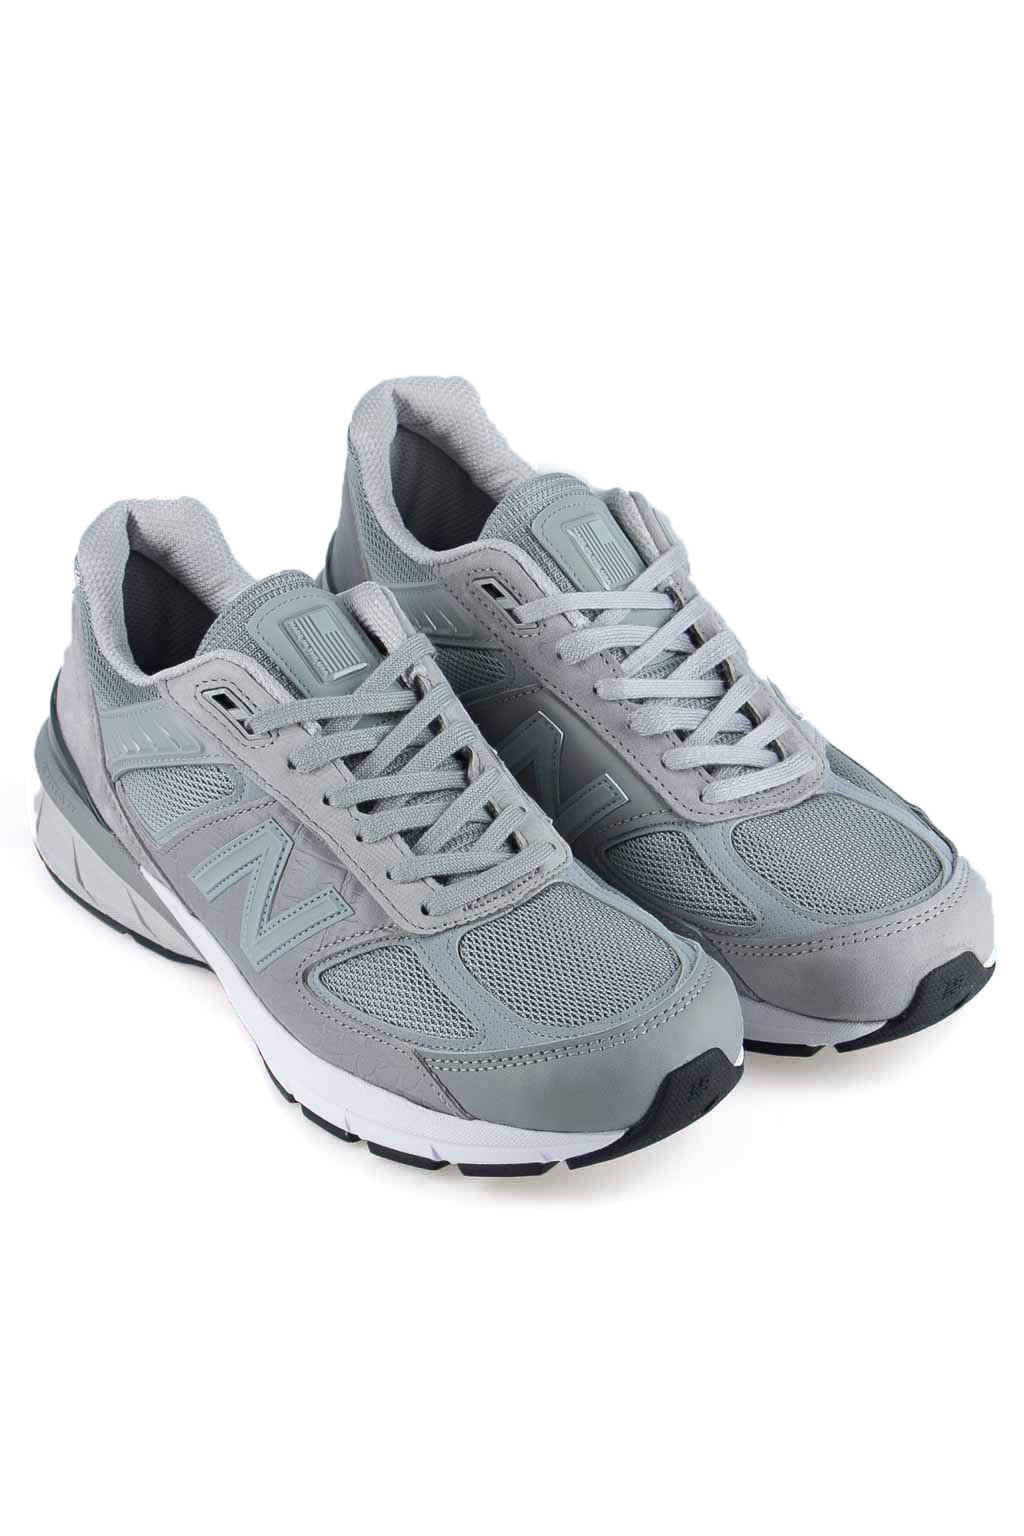 New Balance M990EGG5 by Engineered Garments - Grey